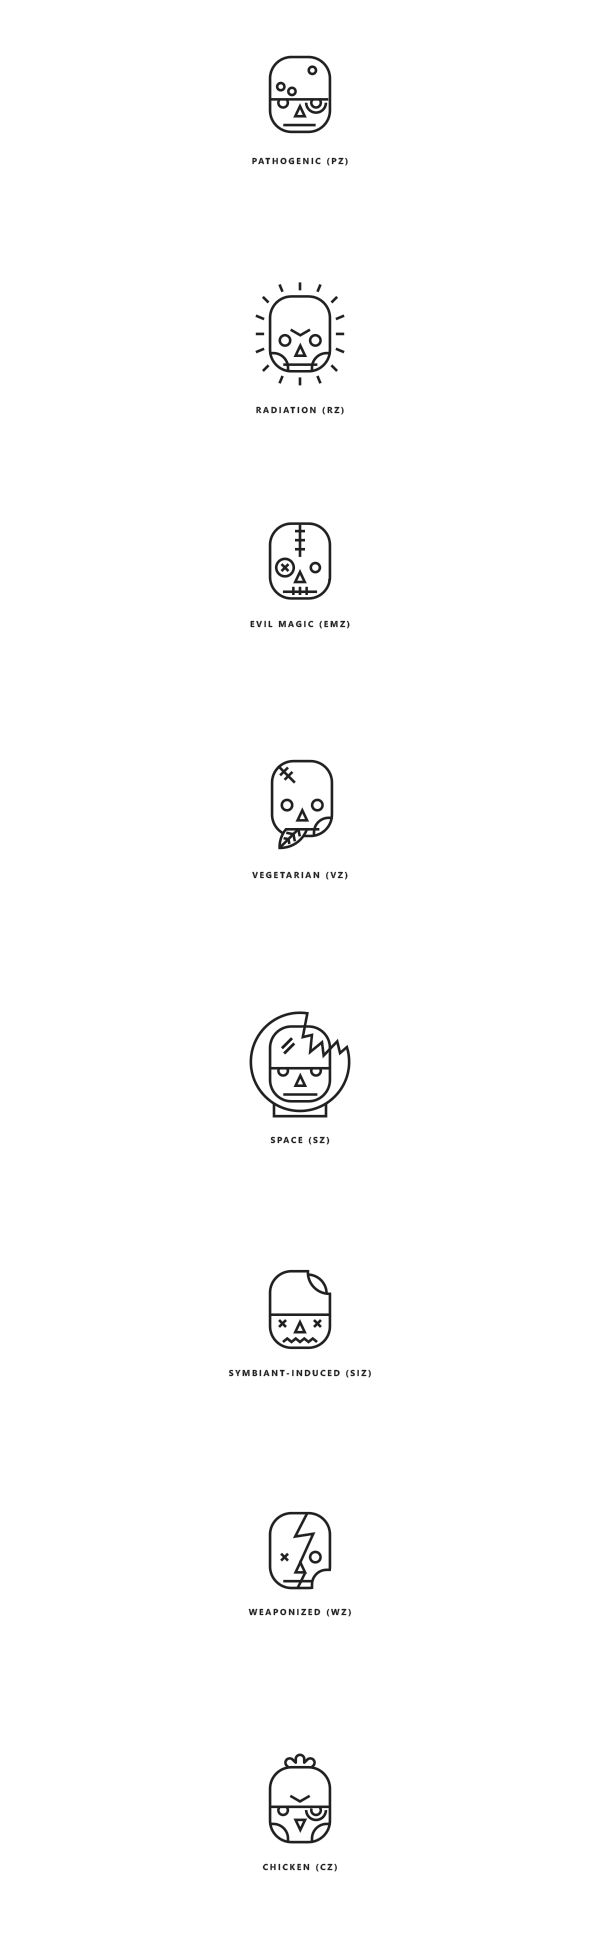 Zombie pictograms for Esquire by Ooli Mos, via Behance